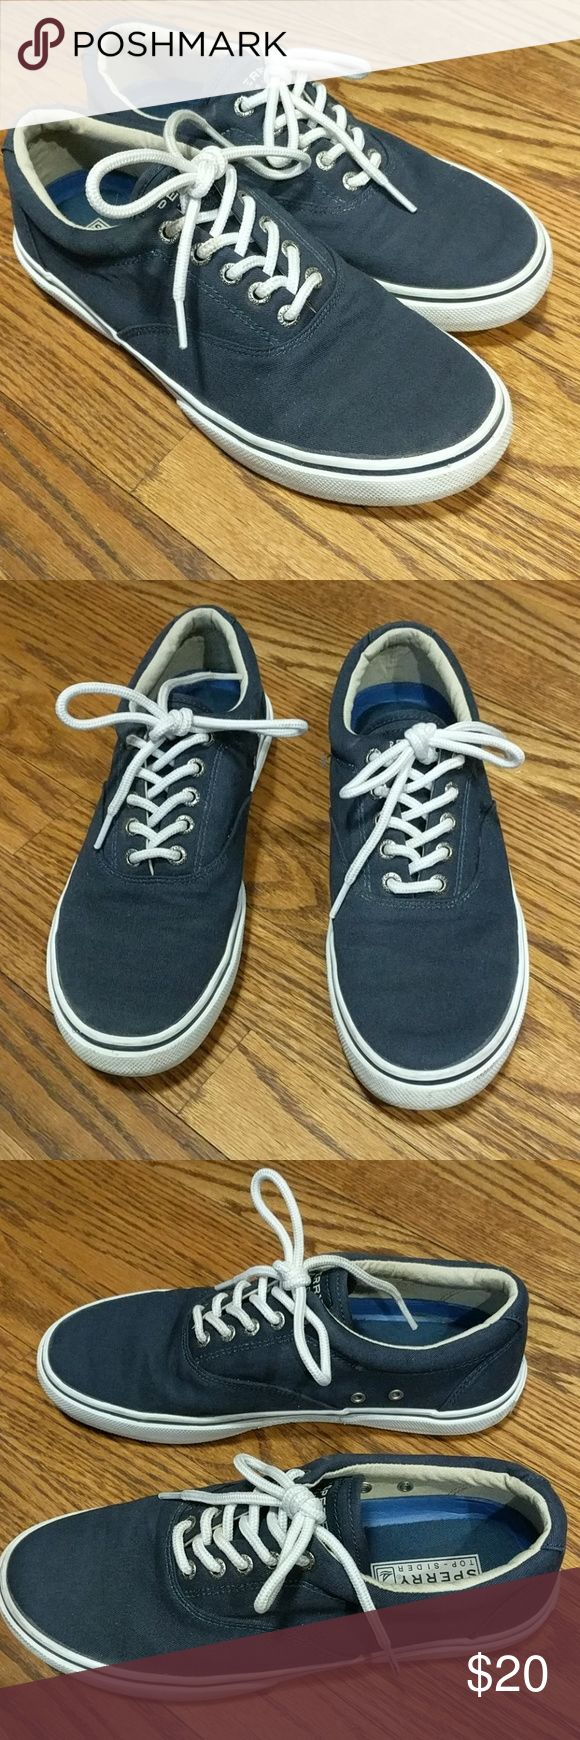 Sperry Top Sider Navy Canvas shoes Sperry Top Sider Men's Navy blue shoes. Can be worn with shorts or jeans.   🌟Smoke free home 🌟No trades 🌟1197 Sperry Top-Sider Shoes Sneakers